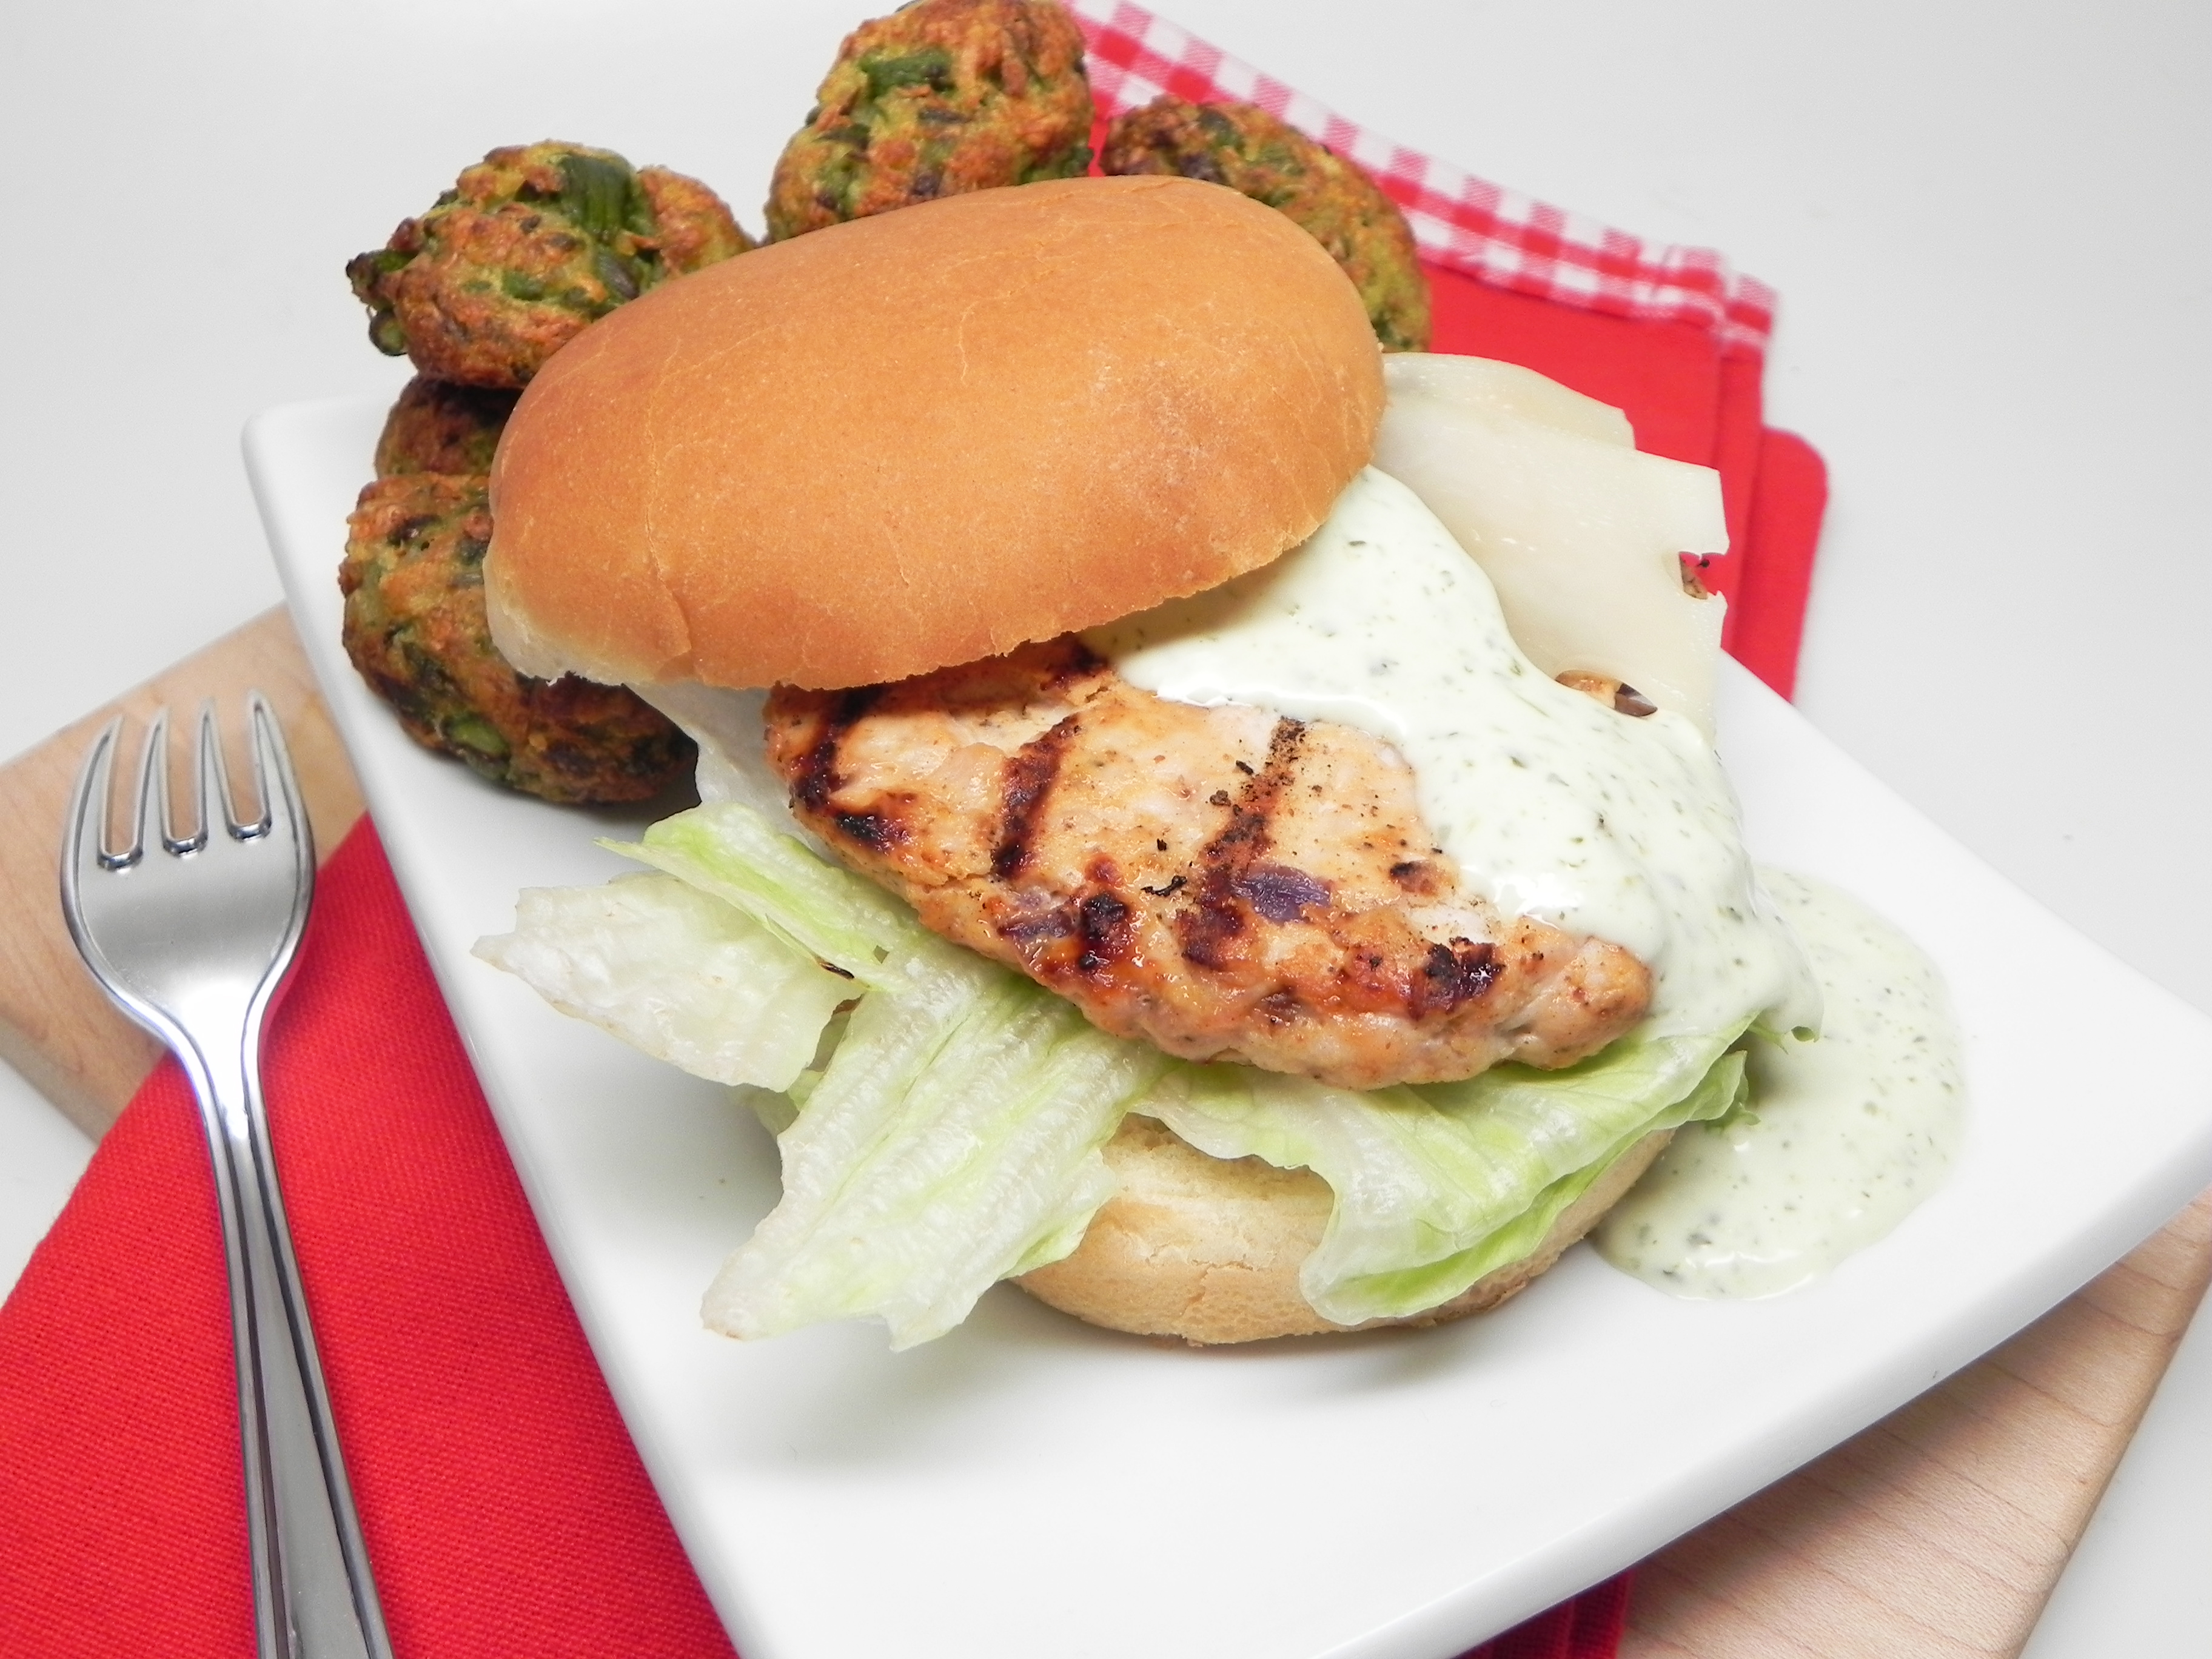 Delicious Grilled Turkey Burgers